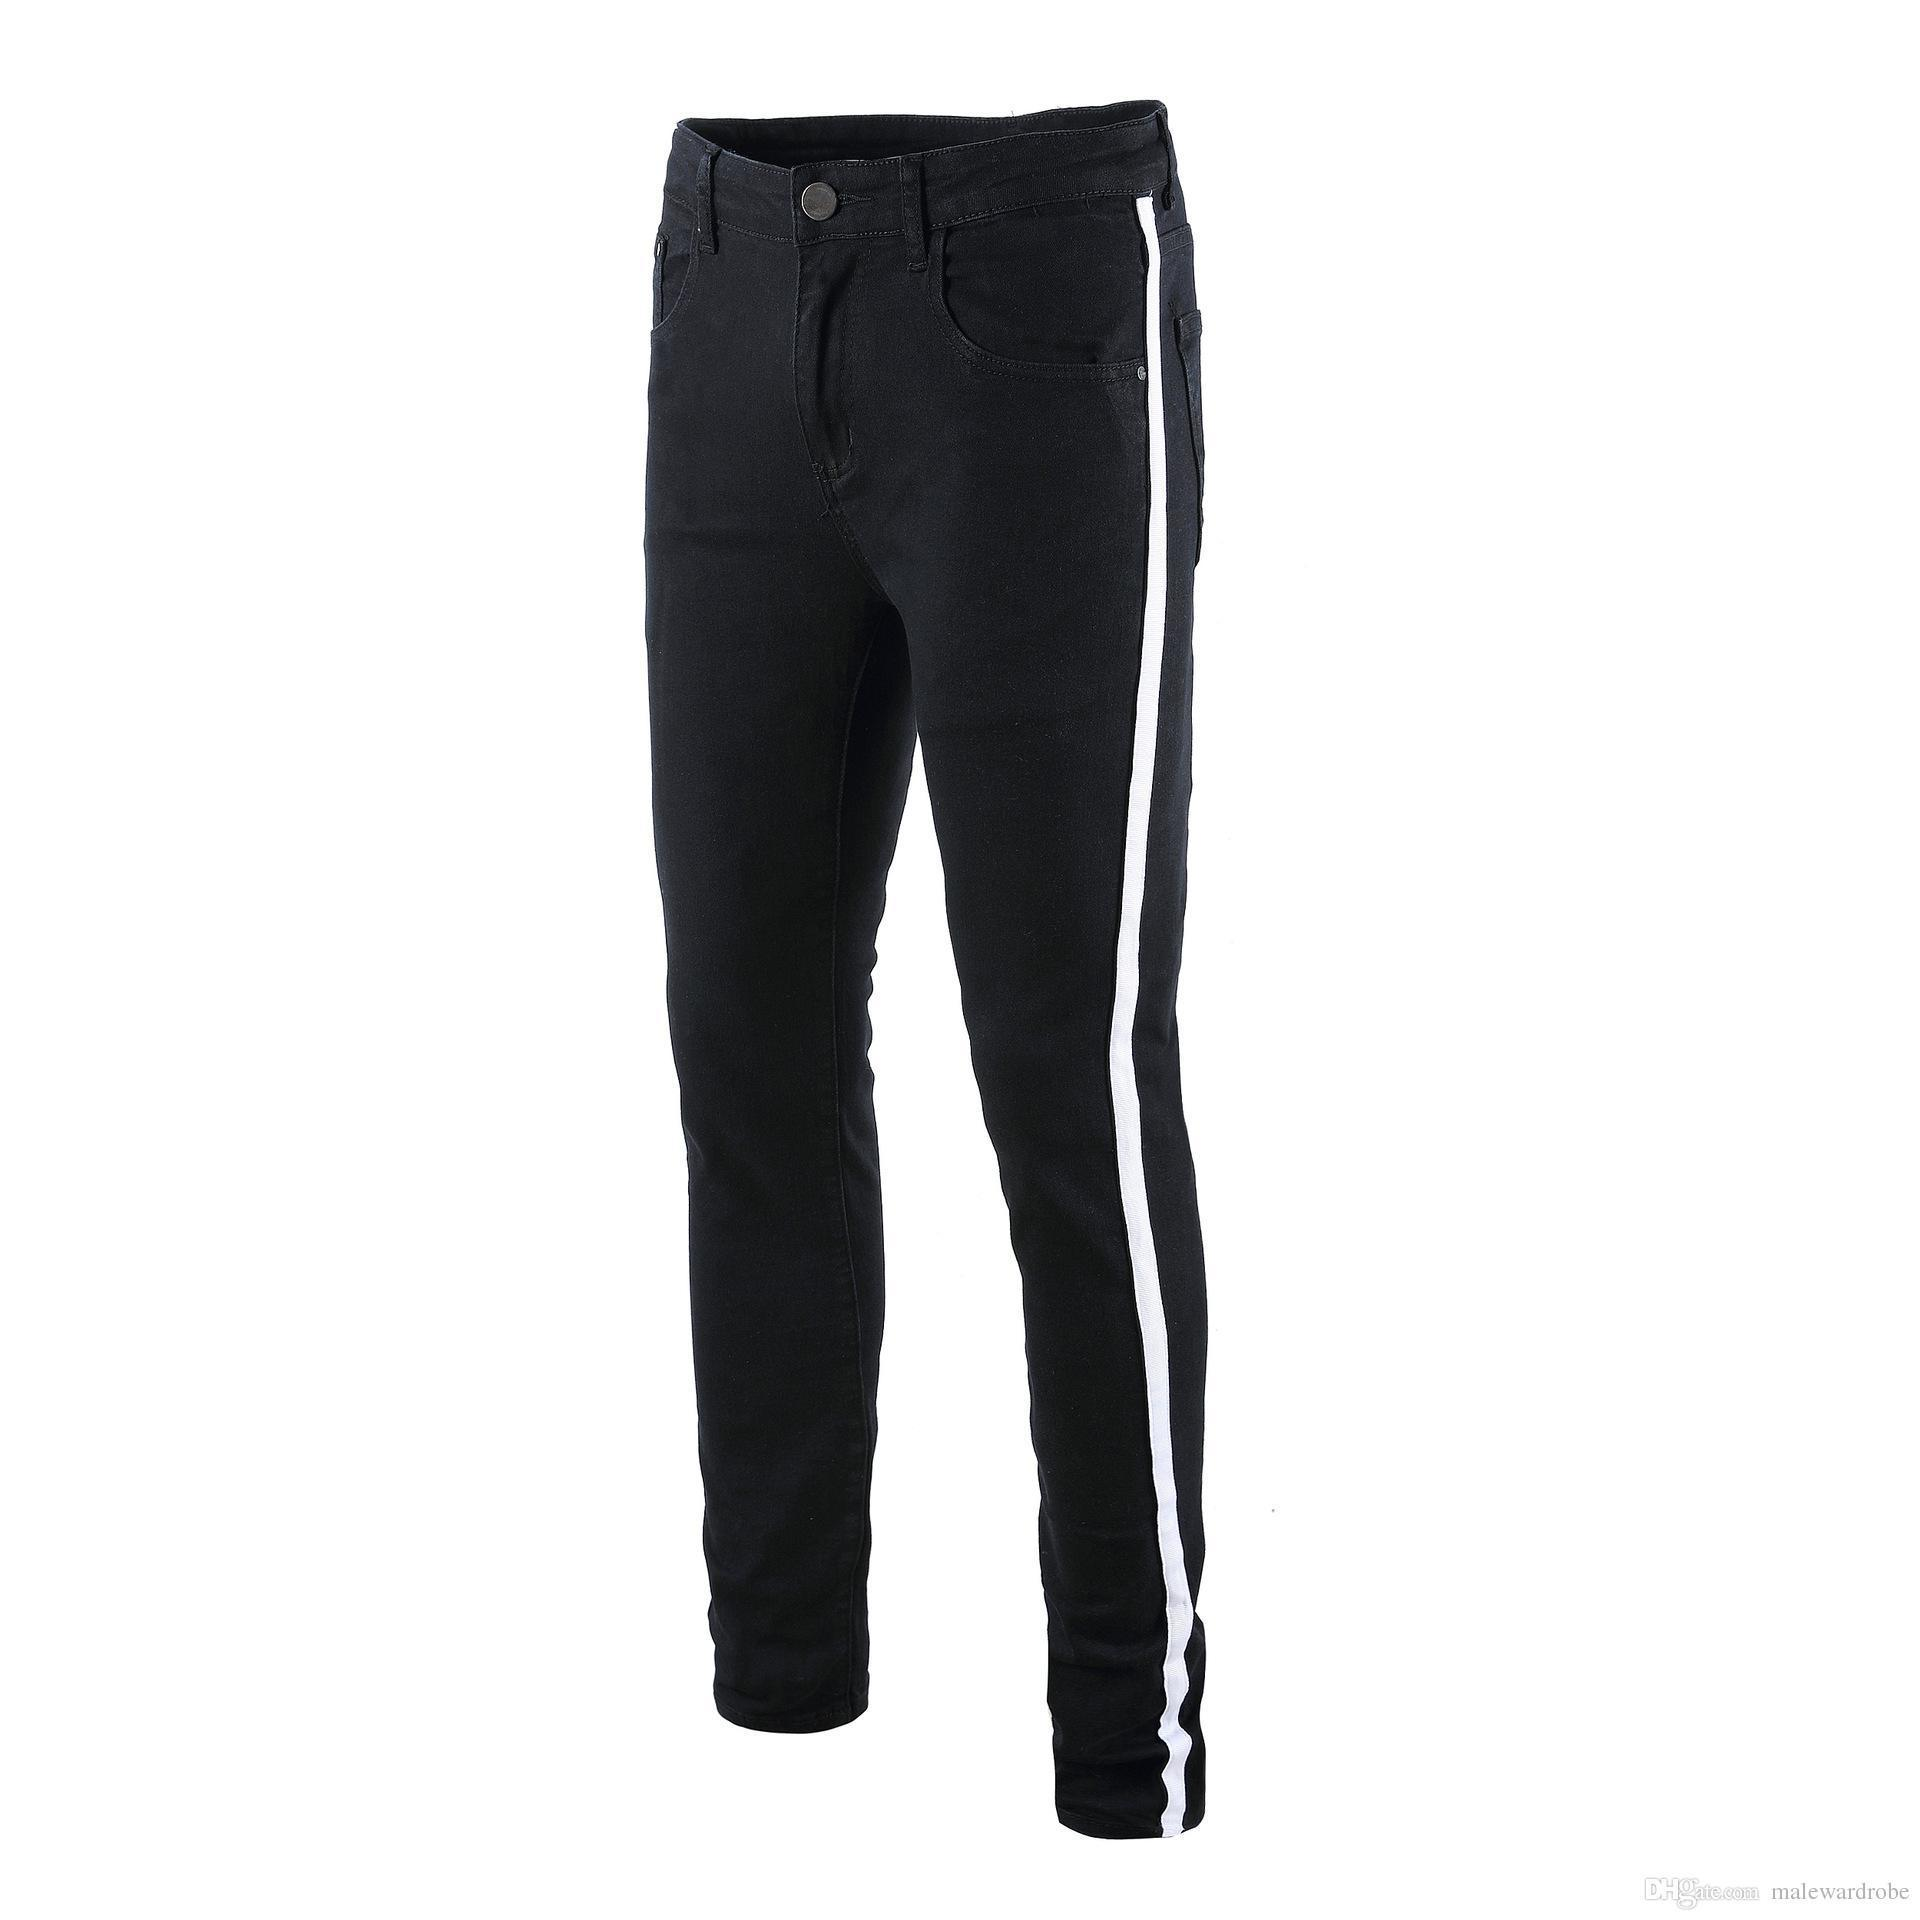 Mens Side Striped Black Jeans Elastic Long Pencil Pants Ripped Hiphop Style Holes